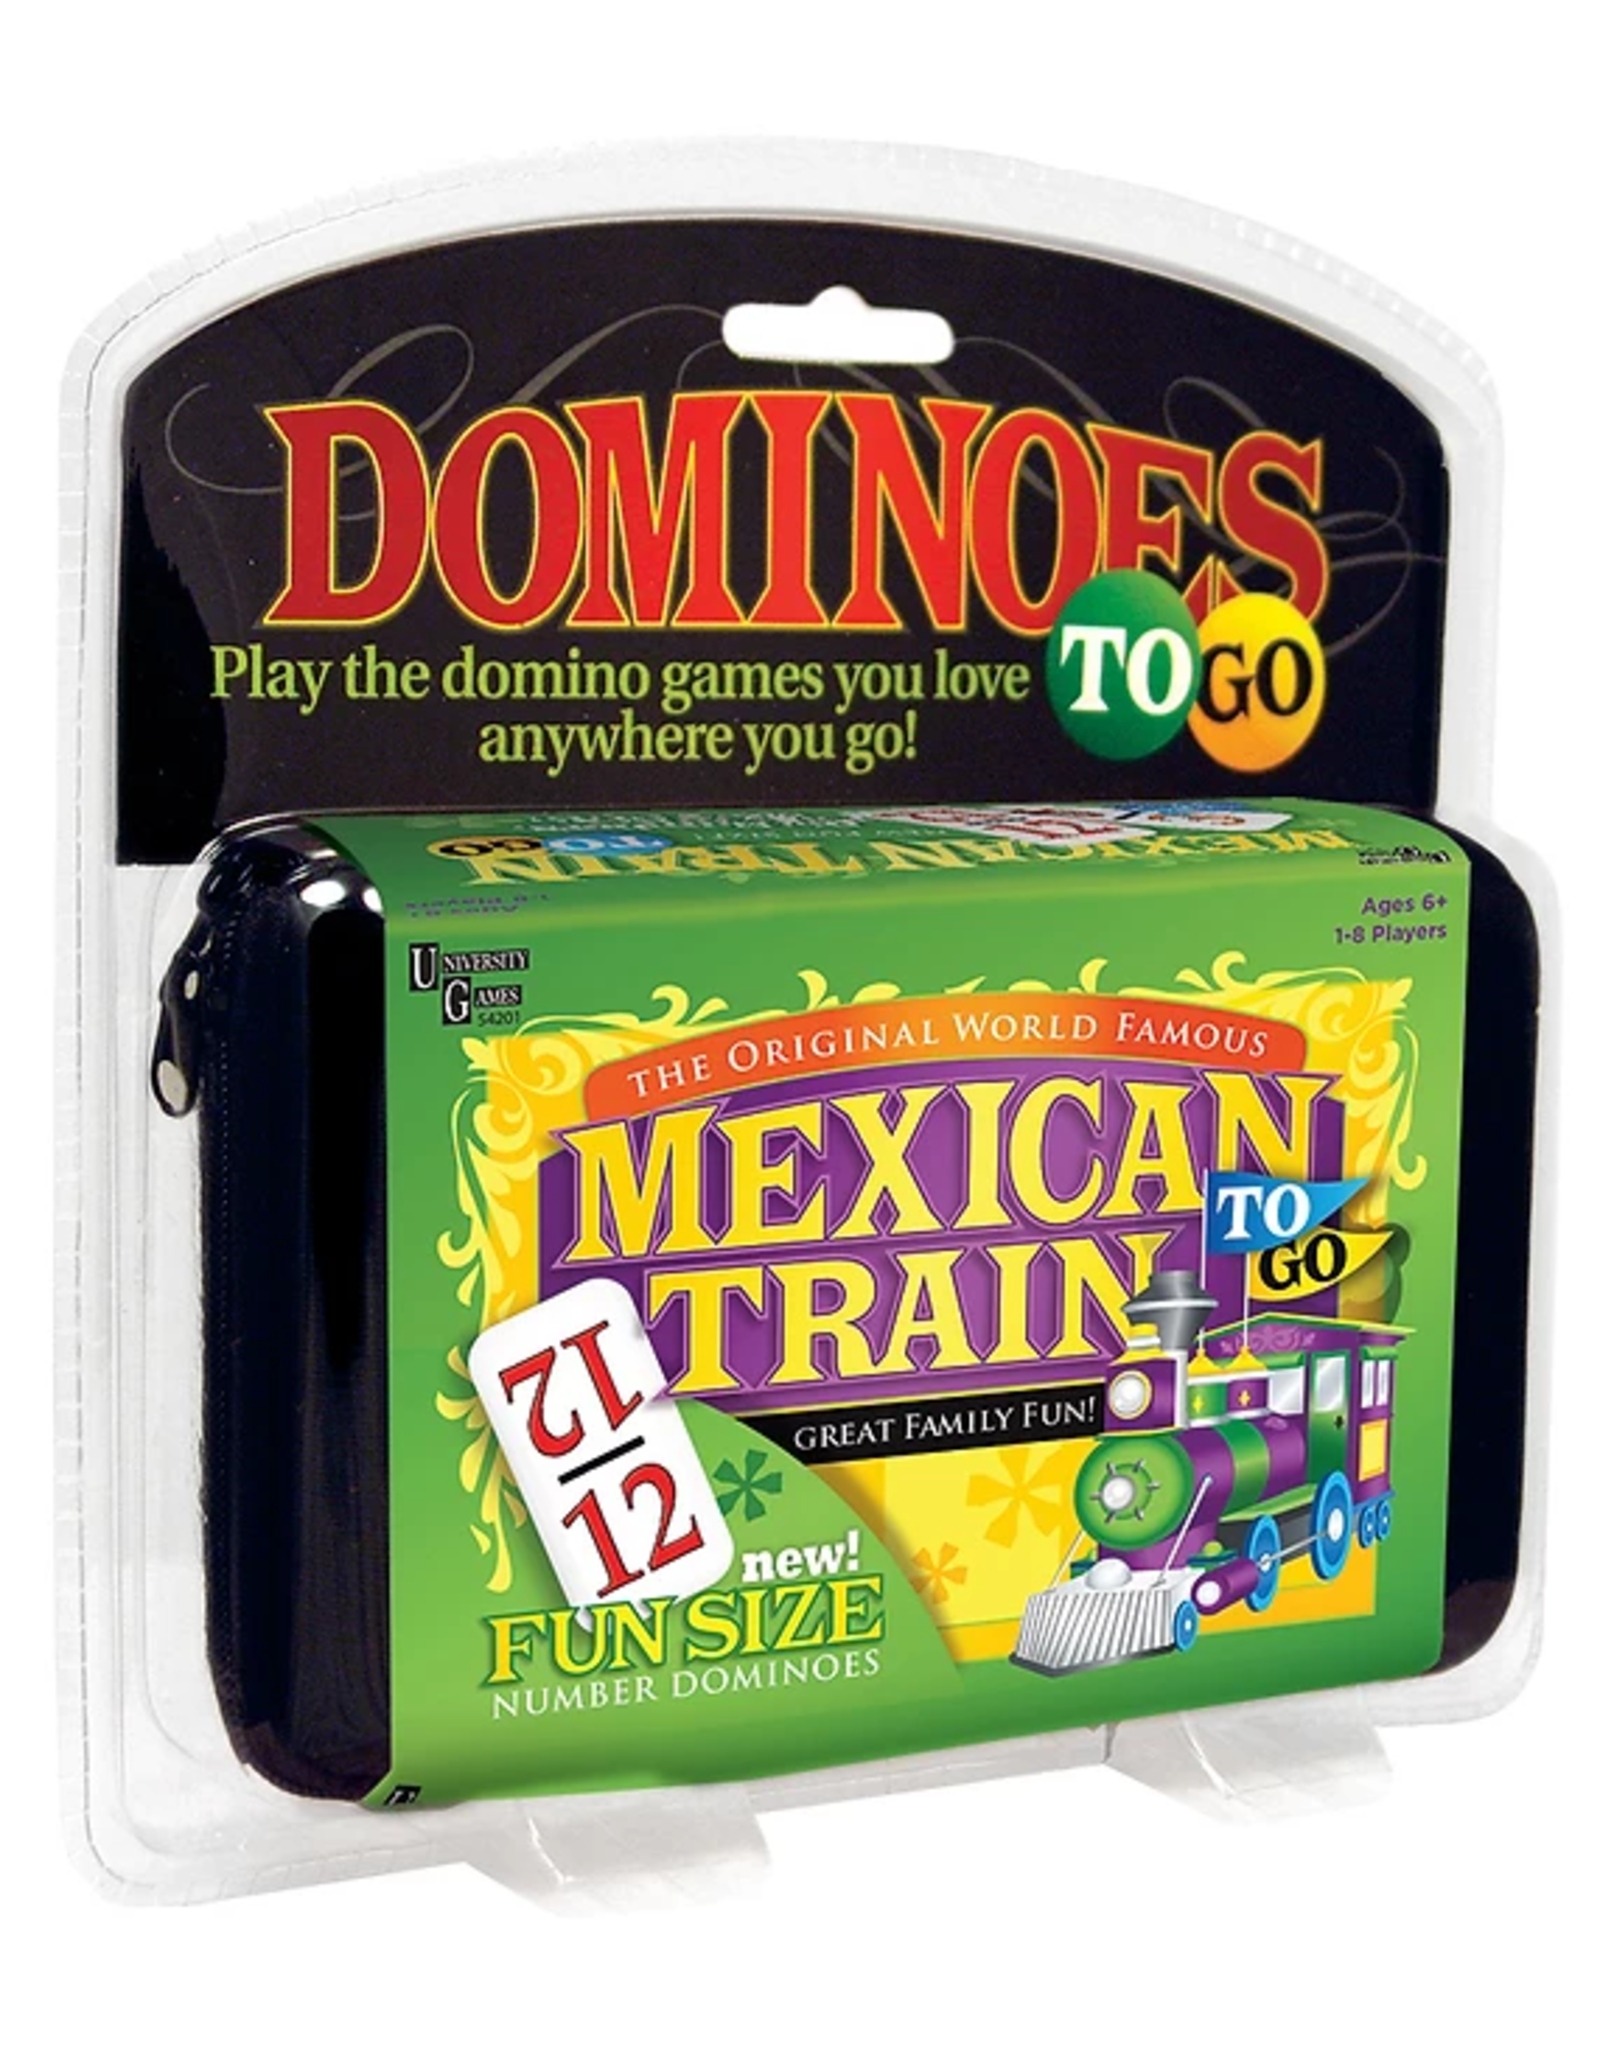 Puremco Dominoes Double 12 Fun Size White/Color Numbers Mexican Train To Go (UG)